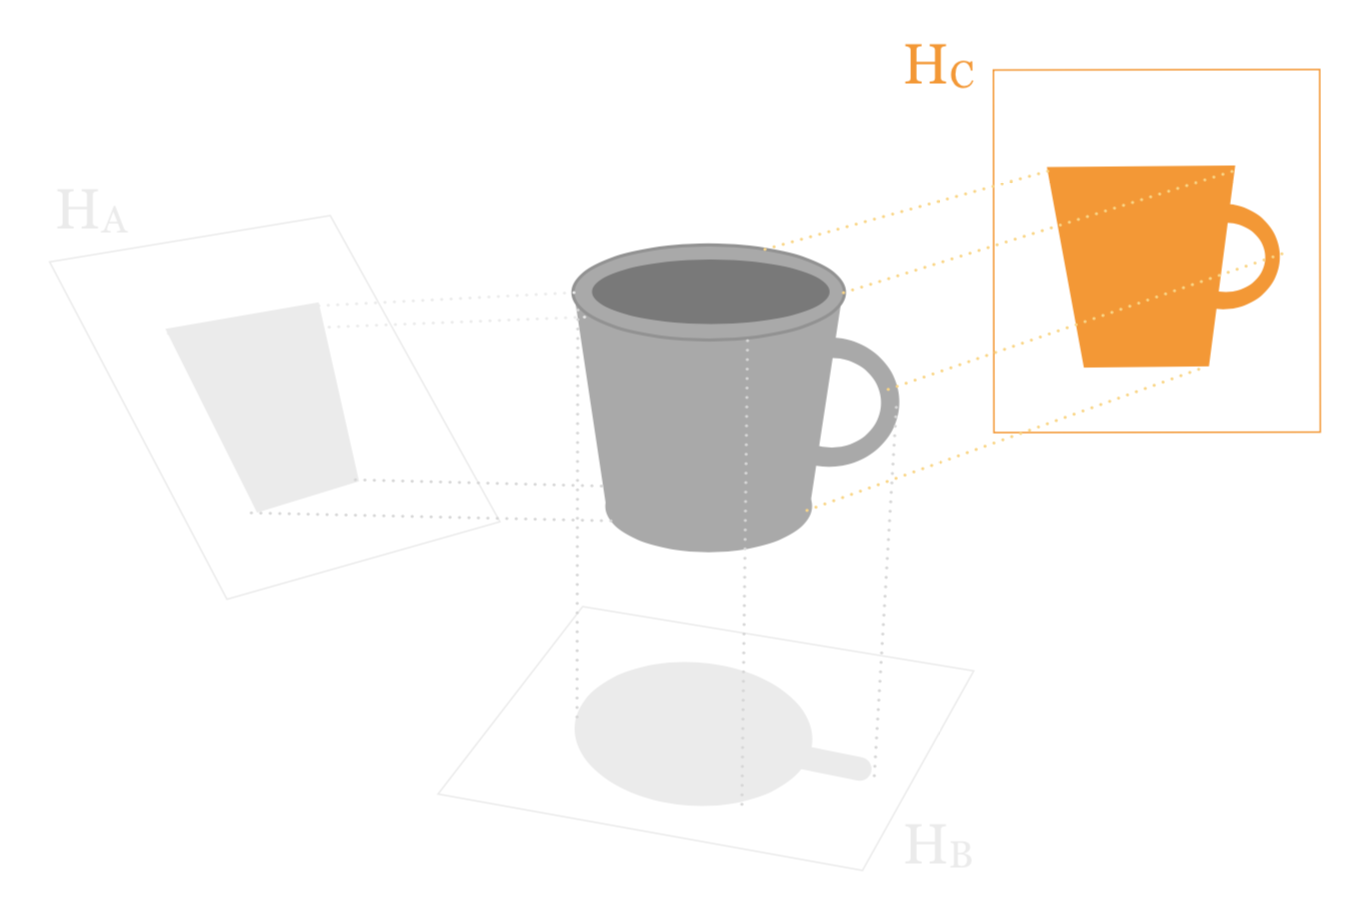 The shape of the projection is similar to the original mug shape.